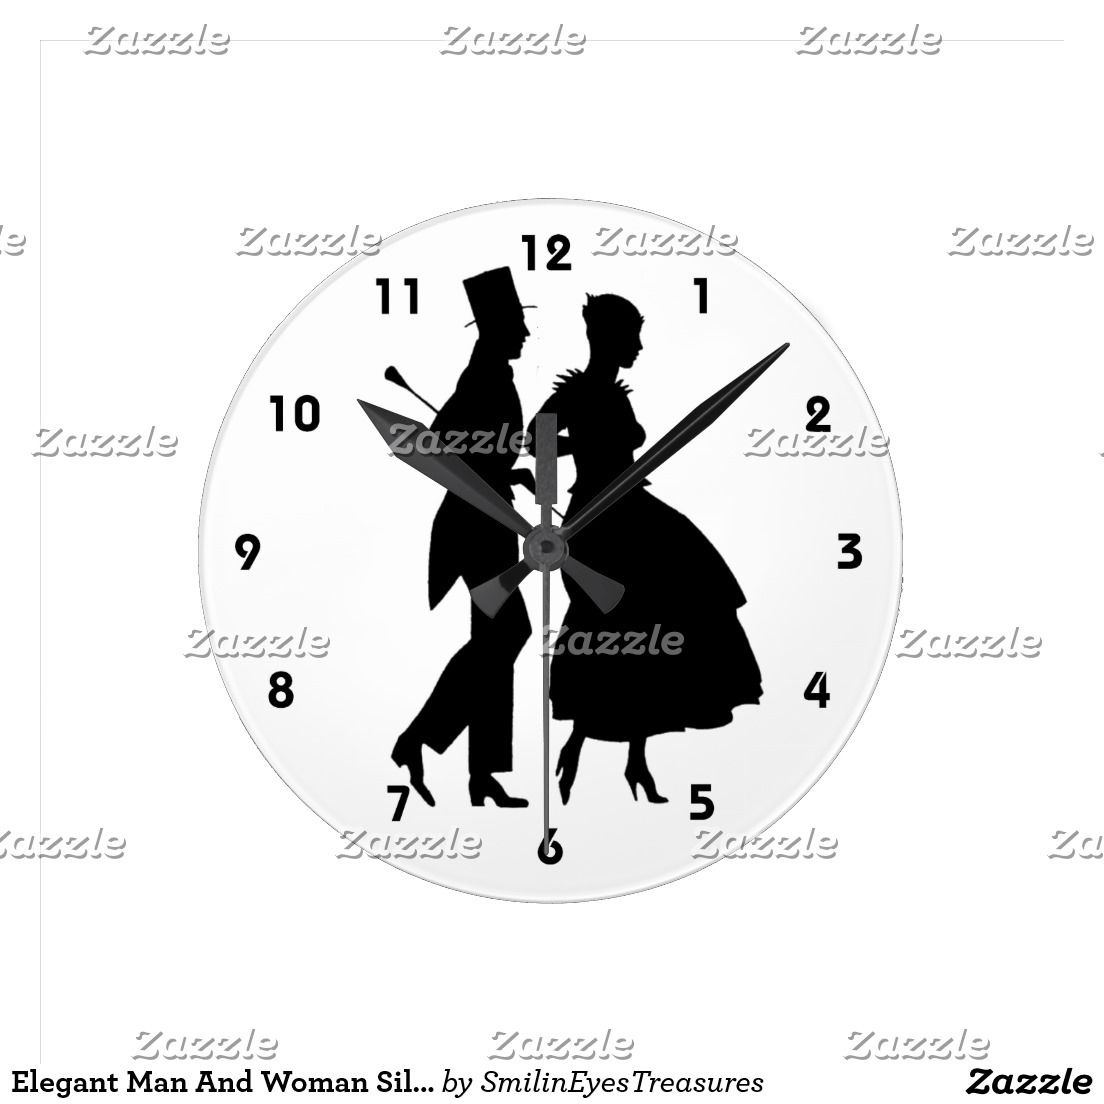 Elegant Man And Woman Silhouettes Round Clock.  From Smilin' Eyes Treasures at Zazzle.